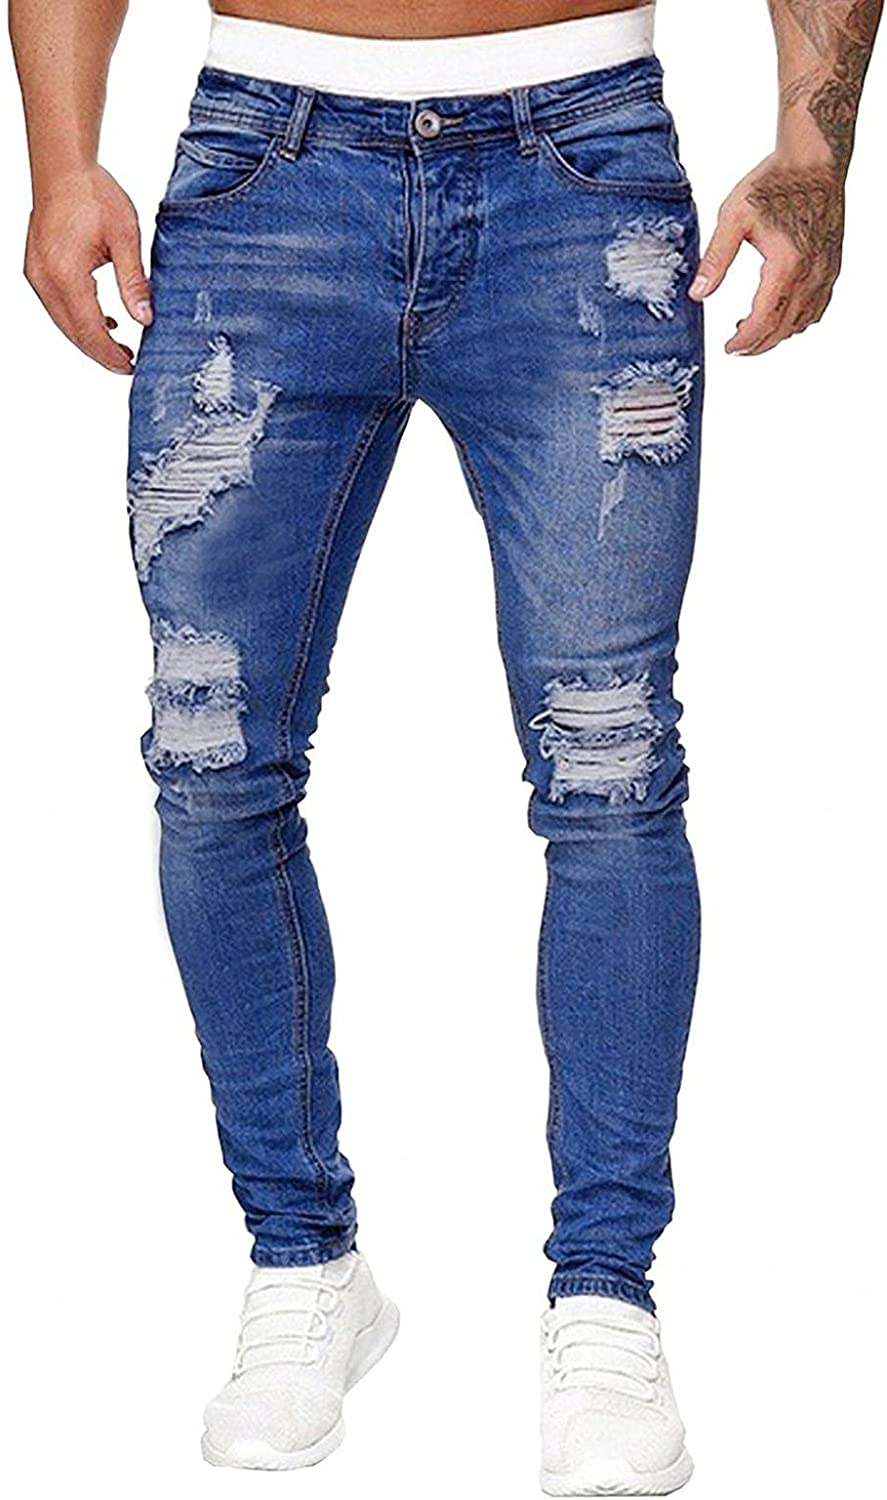 FUNEY Men's Ripped Distressed Destroyed Slim Fit Straight Leg Denim Jeans Casual Stretchy Vintage Biker Bootcut Jeans